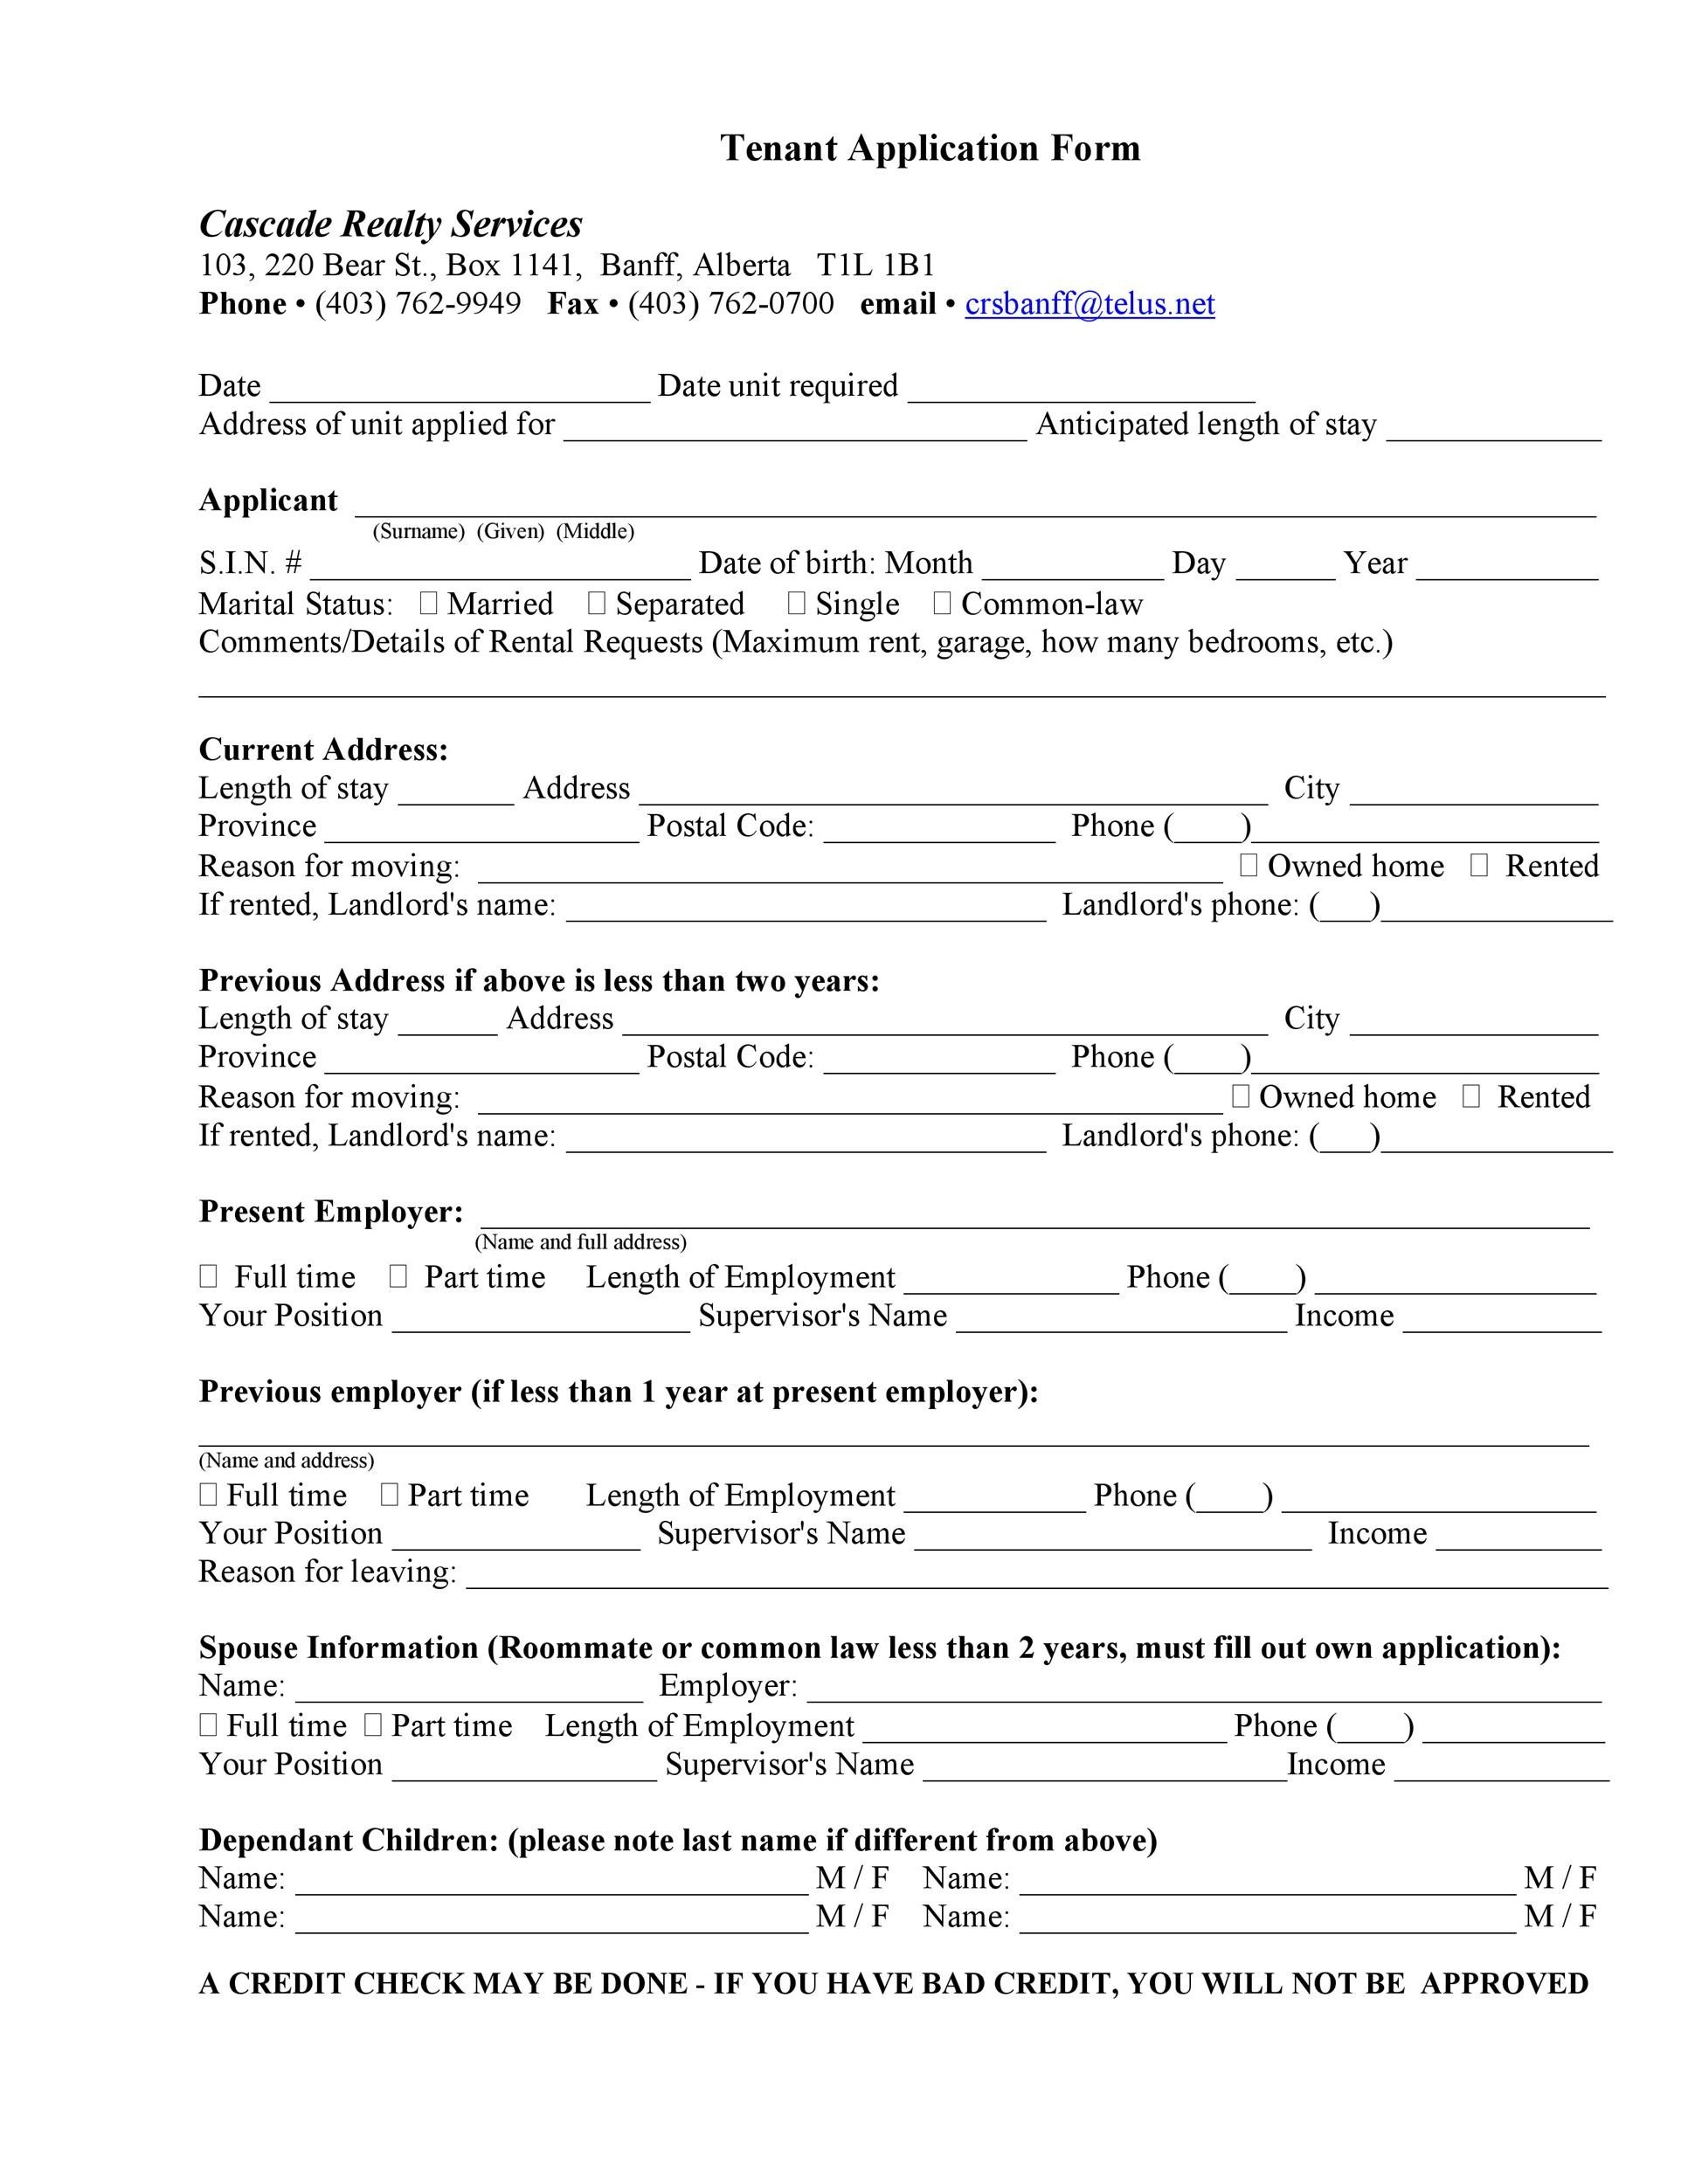 tenant application form not agreement